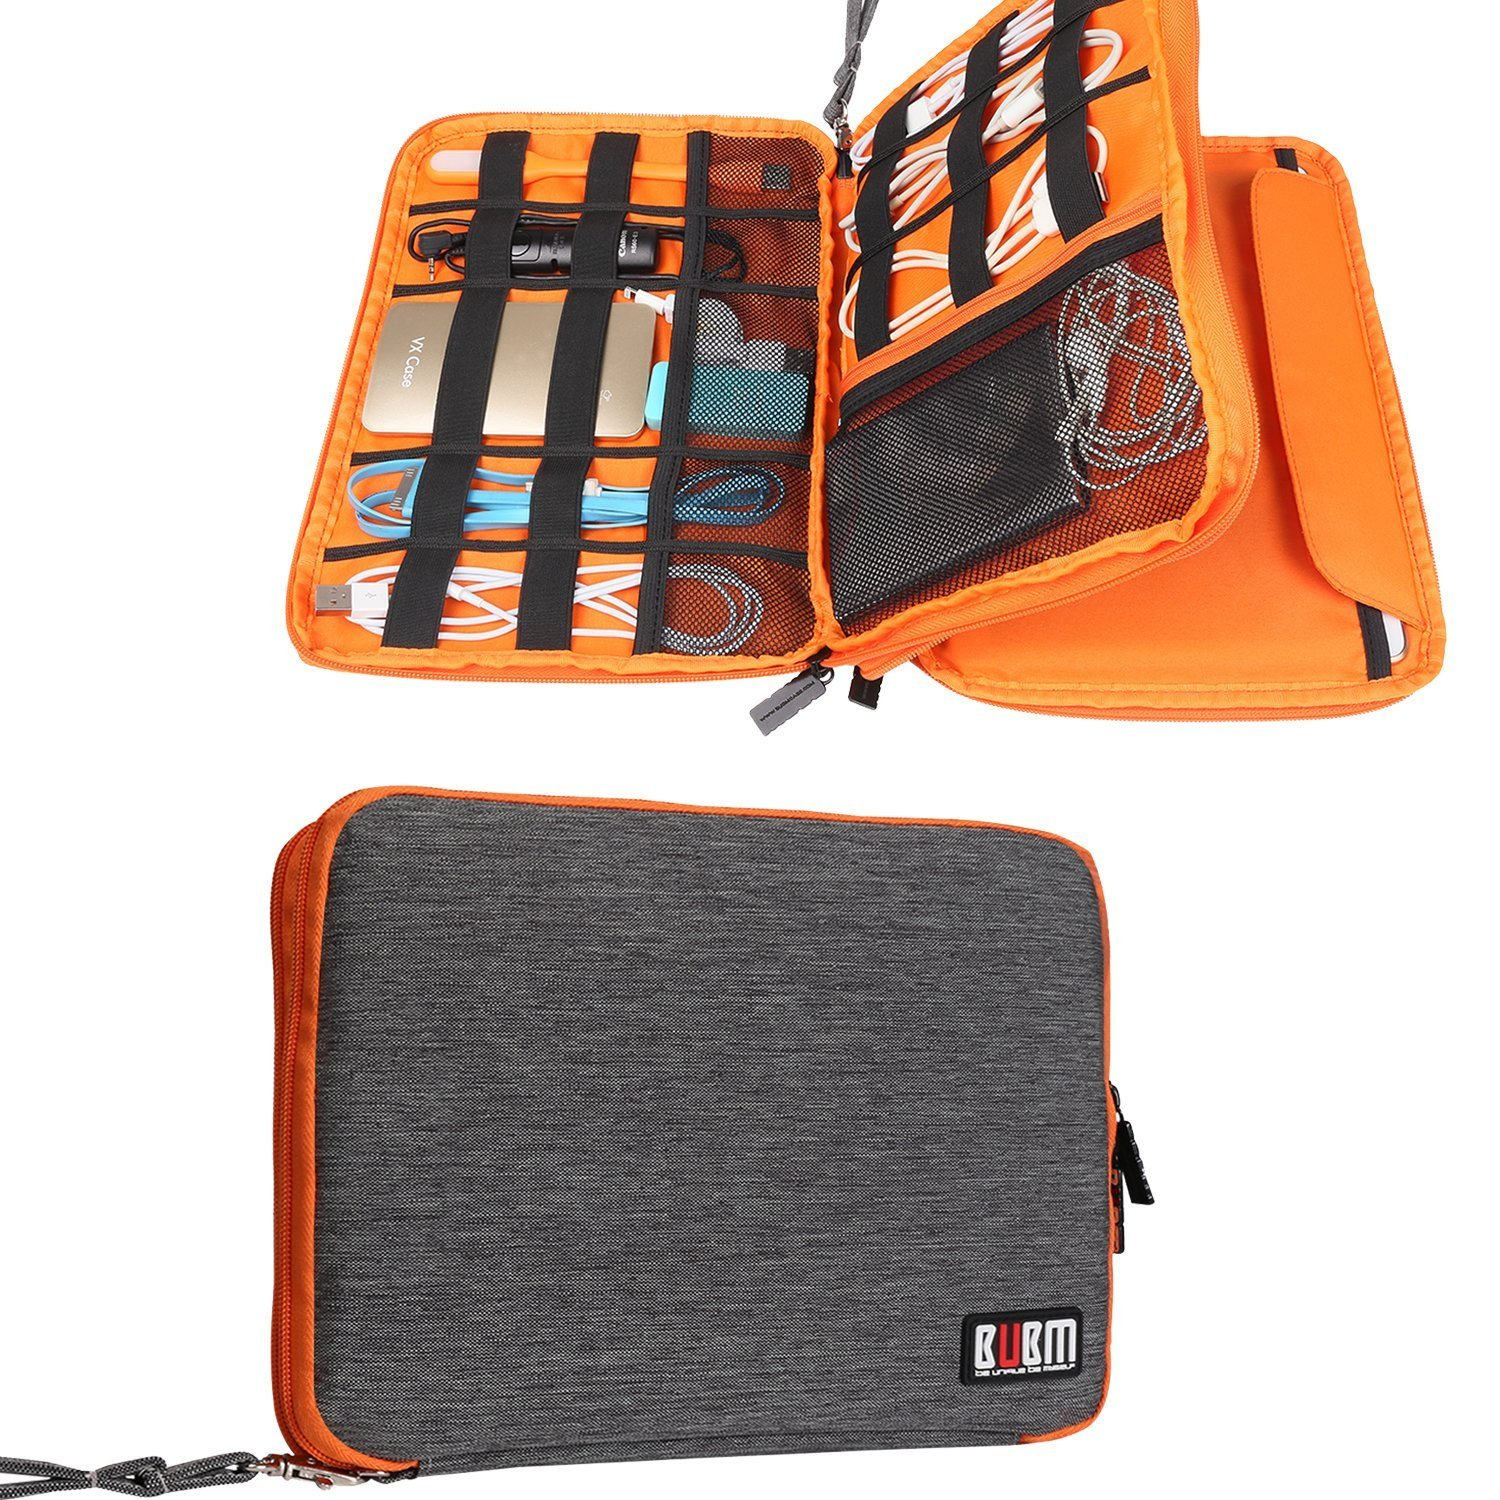 BUBM Travel Double Layer Gear Organizer Electronics Accessories Bag (L, Gray and Orange)